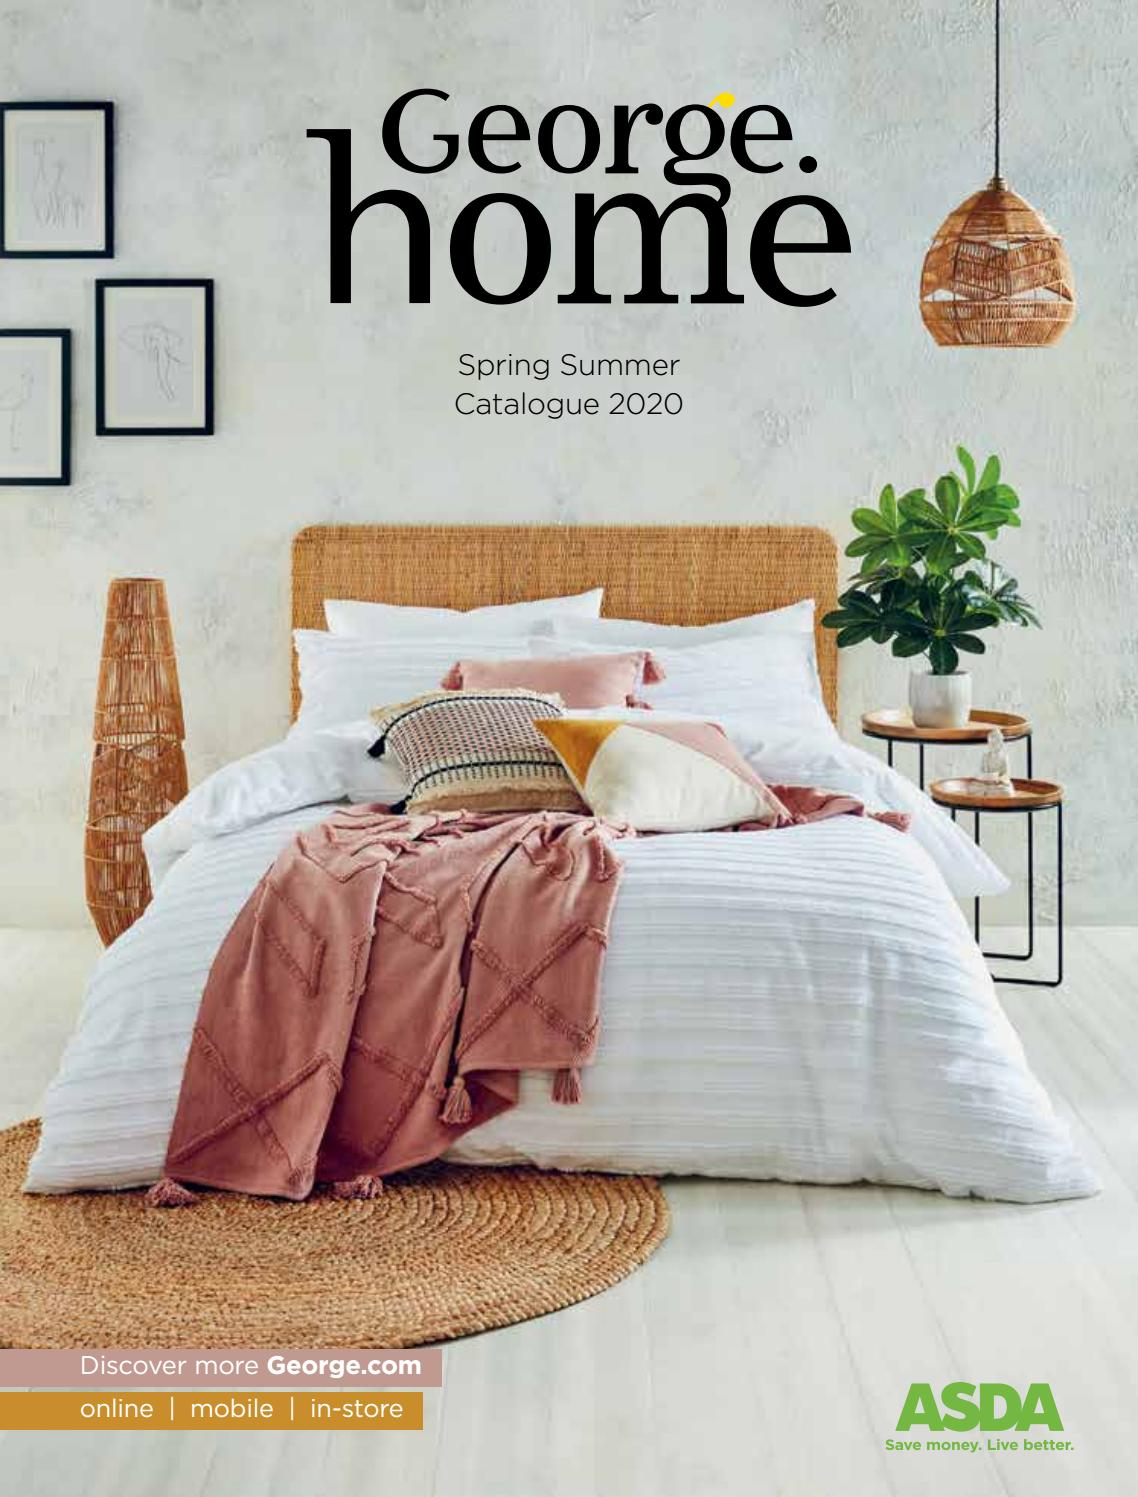 George Home Spring Summer Catalogue 2020 By Asda Issuu